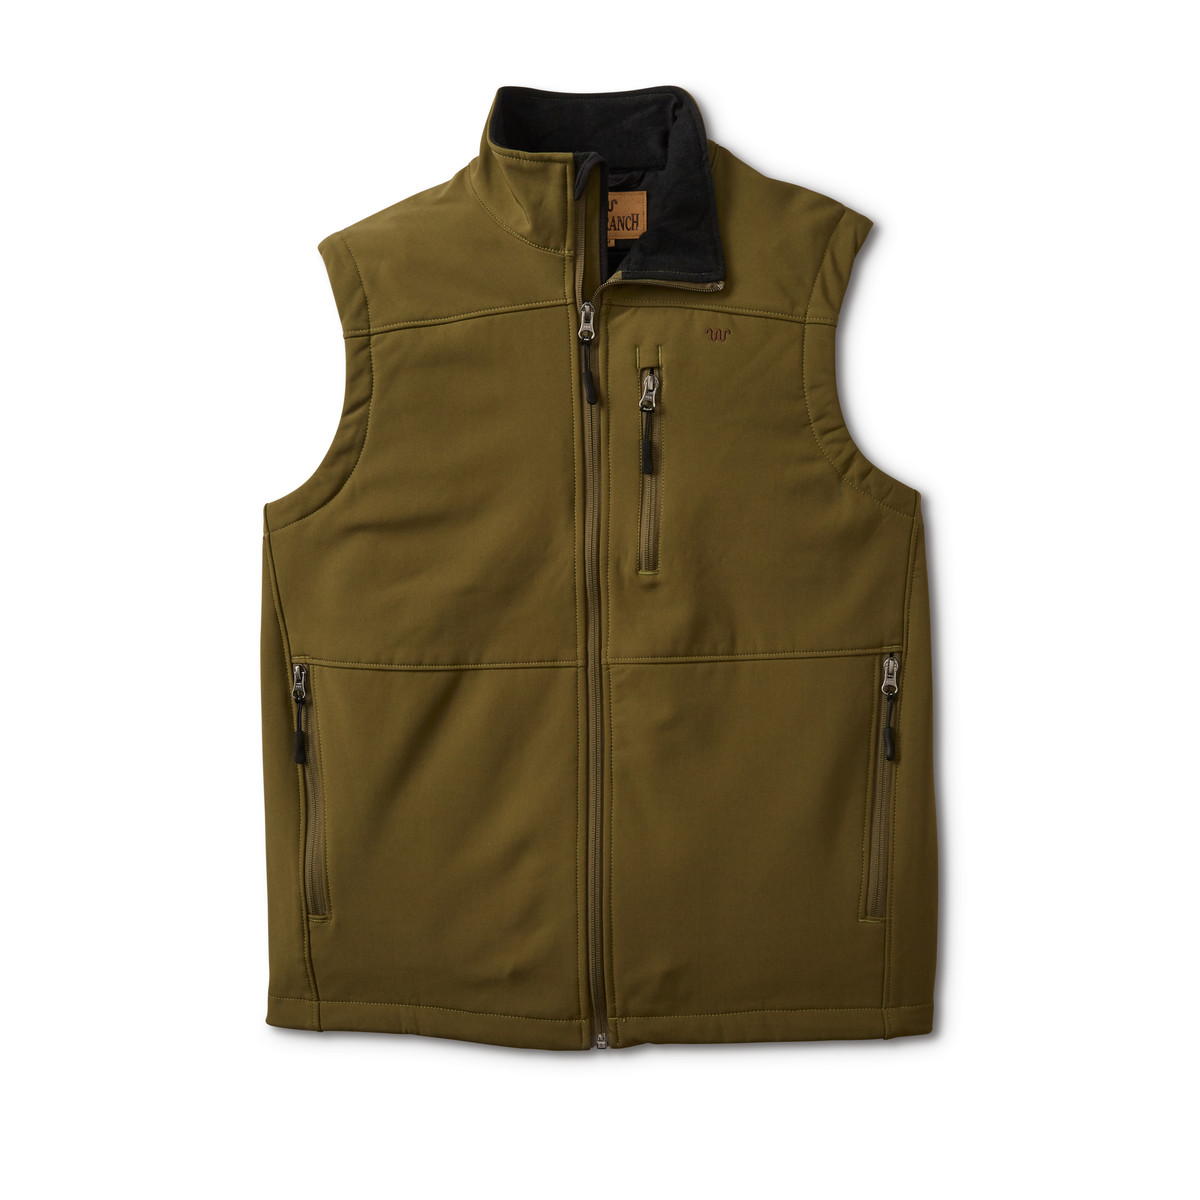 Men's Bonded Poly Vest features three front zippered pockets